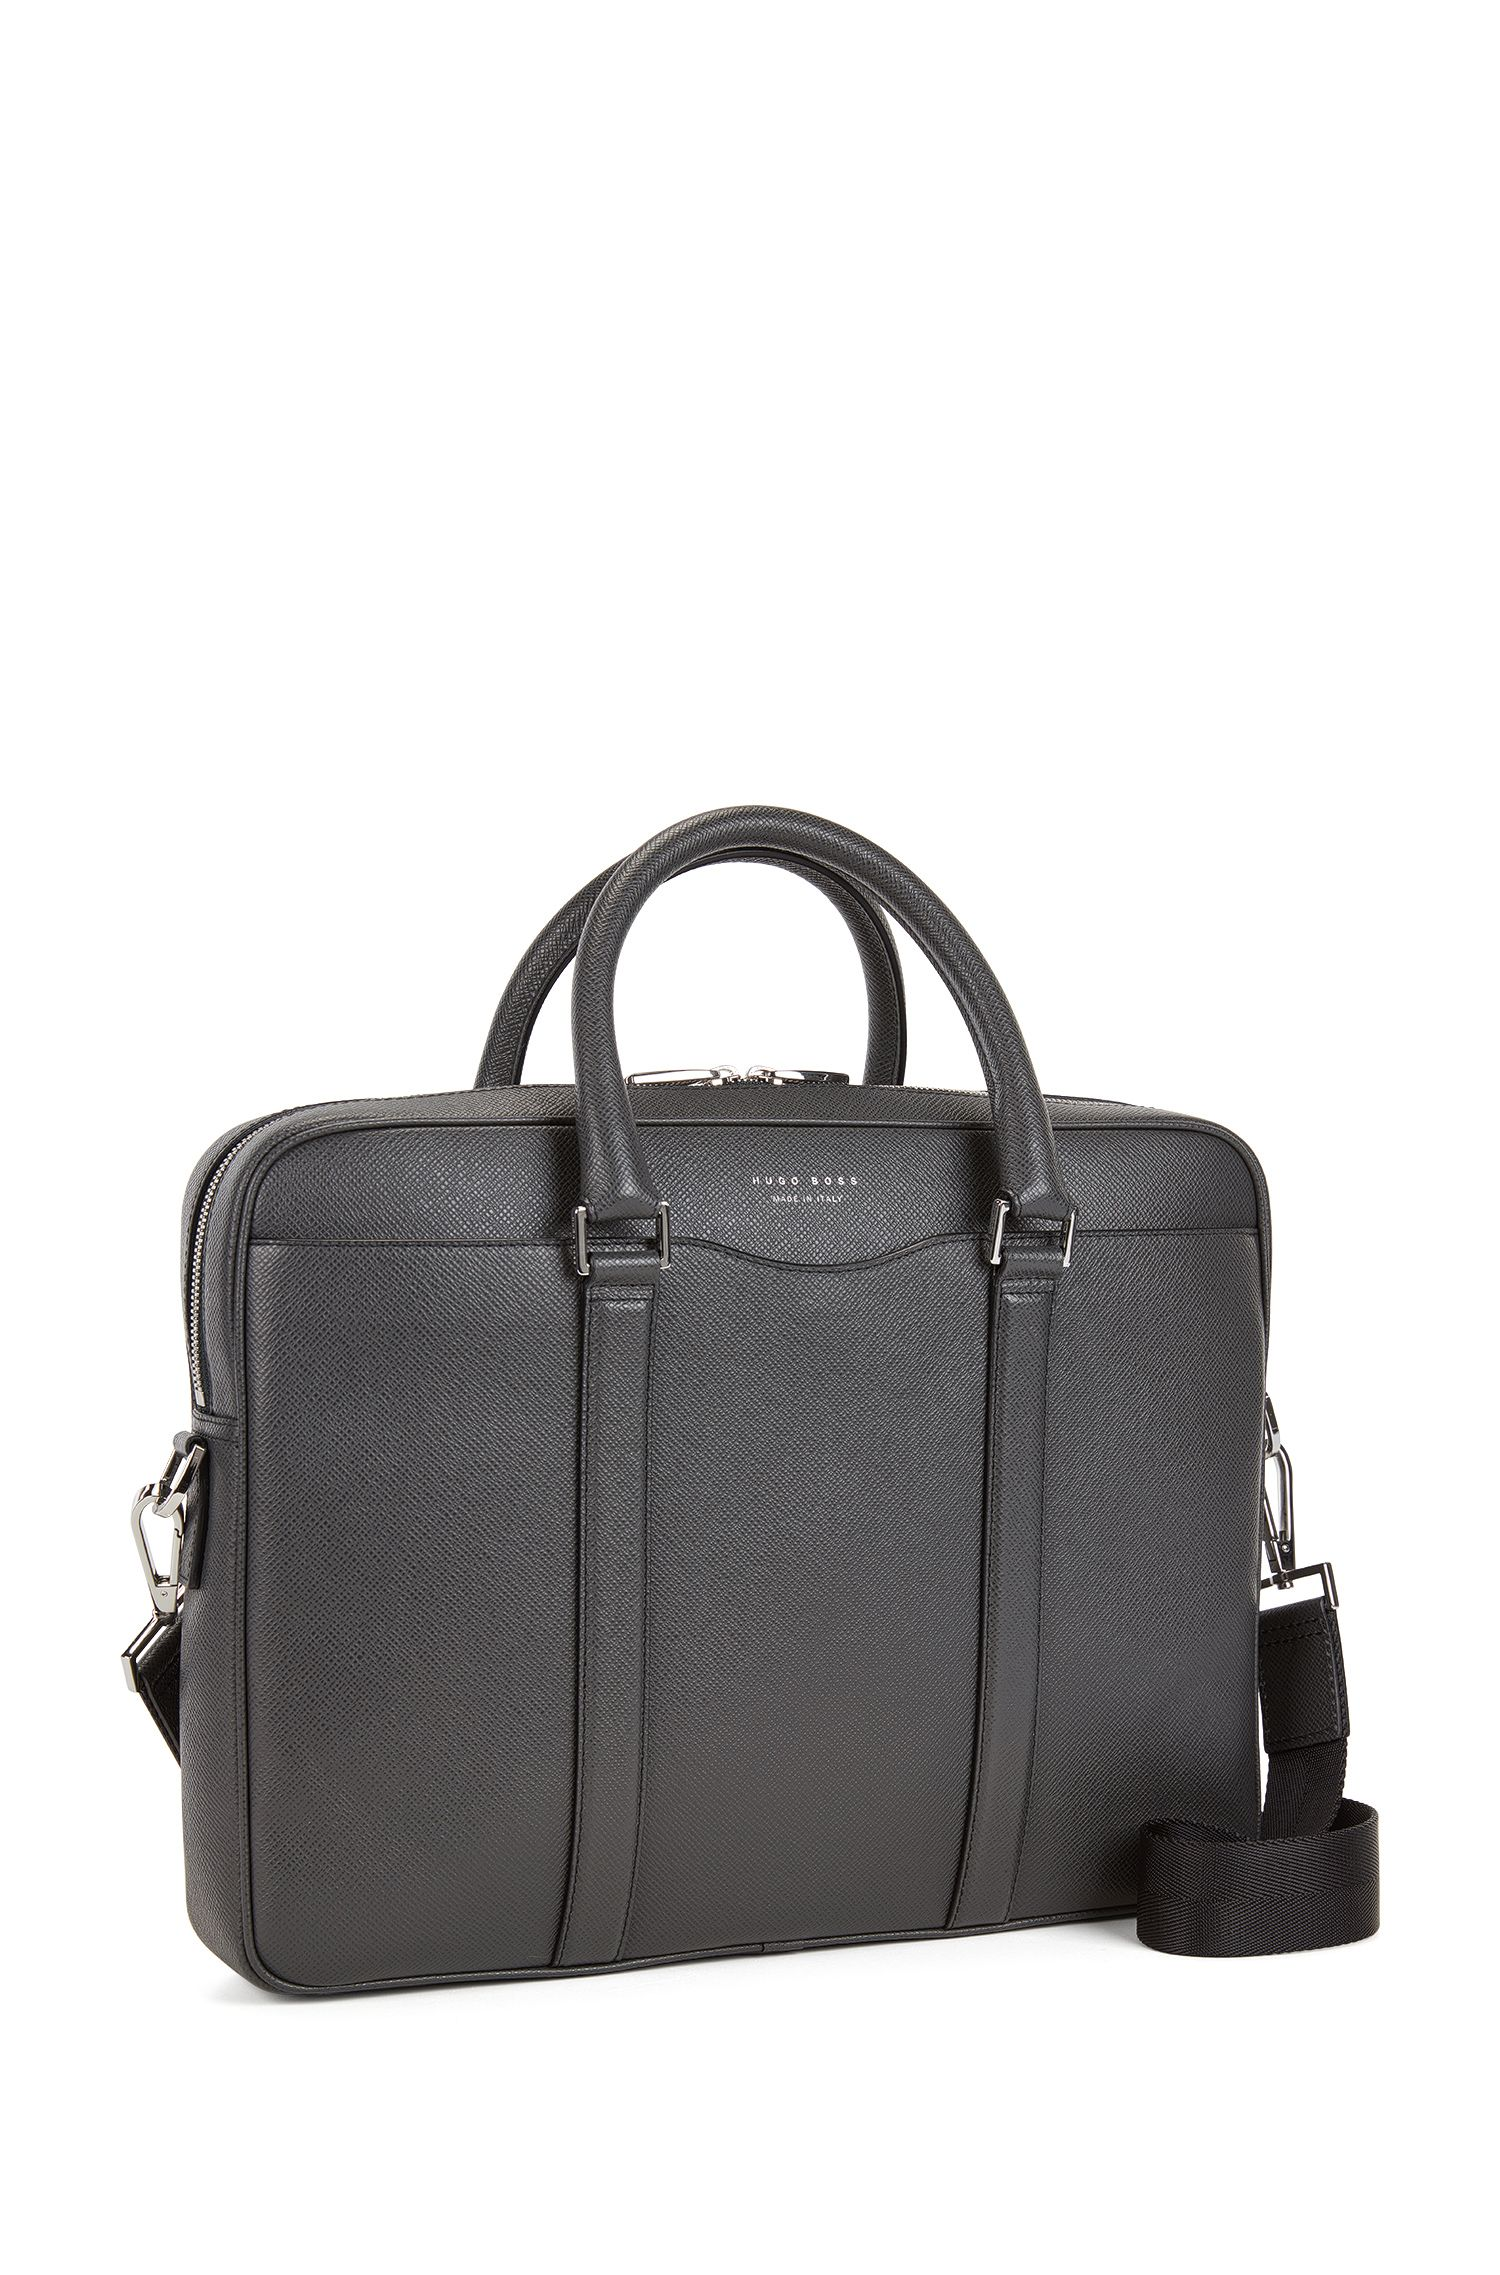 Signature Collection bag in palmellato leather